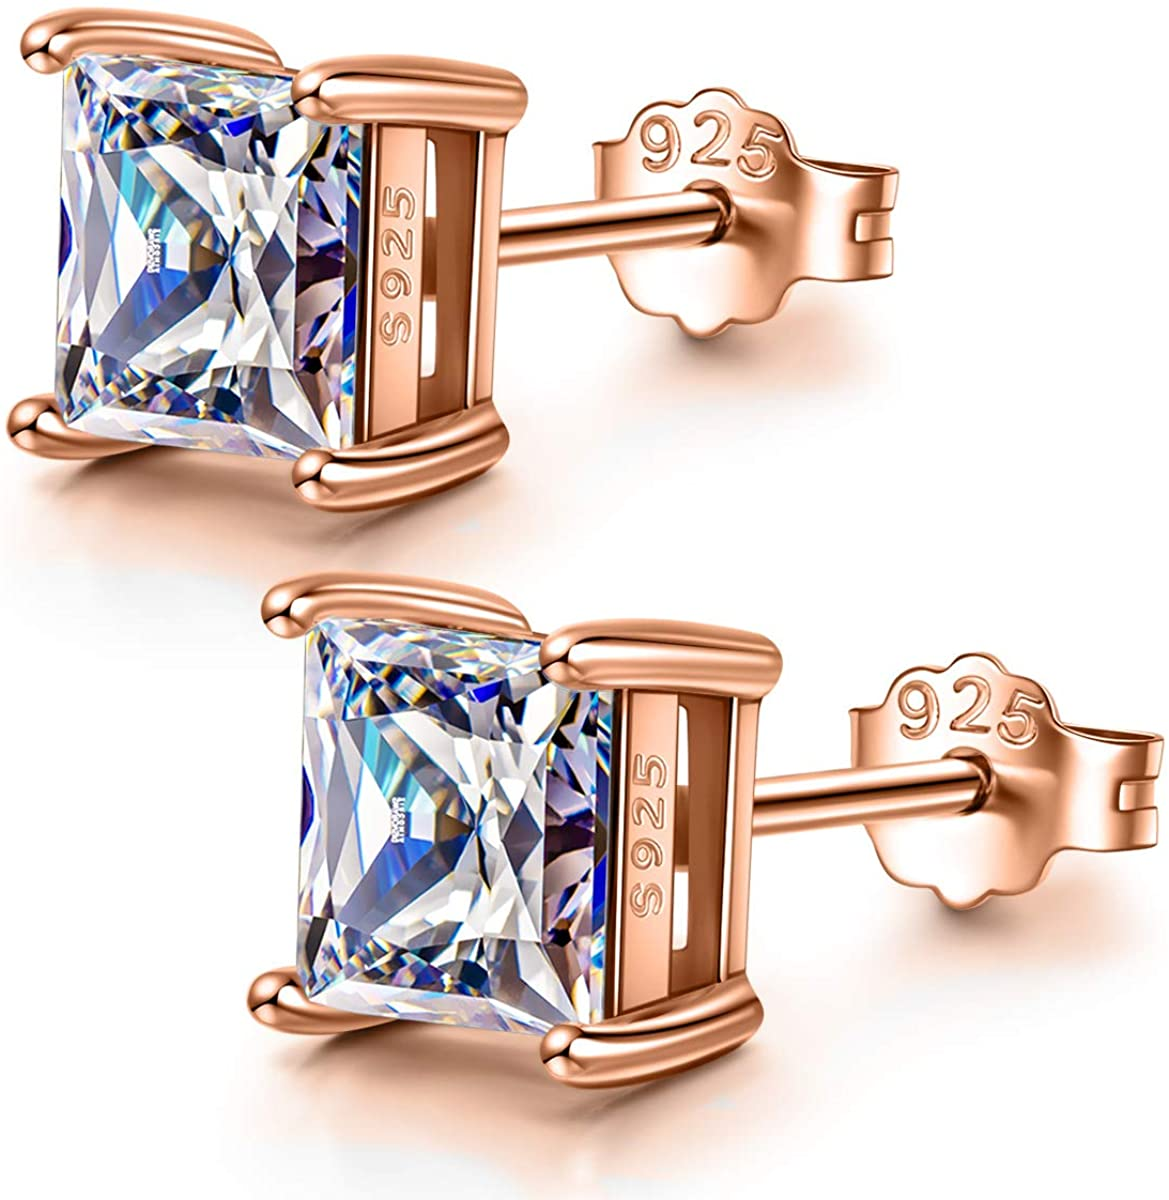 NINA&NANA 925 Sterling Silver Stud Earrings for Women, Zirconia from Swarovski, Rose Gold/Silver, 4MM-5MM, Earrings for Mom Wife Ladies with Delicate Gift Box